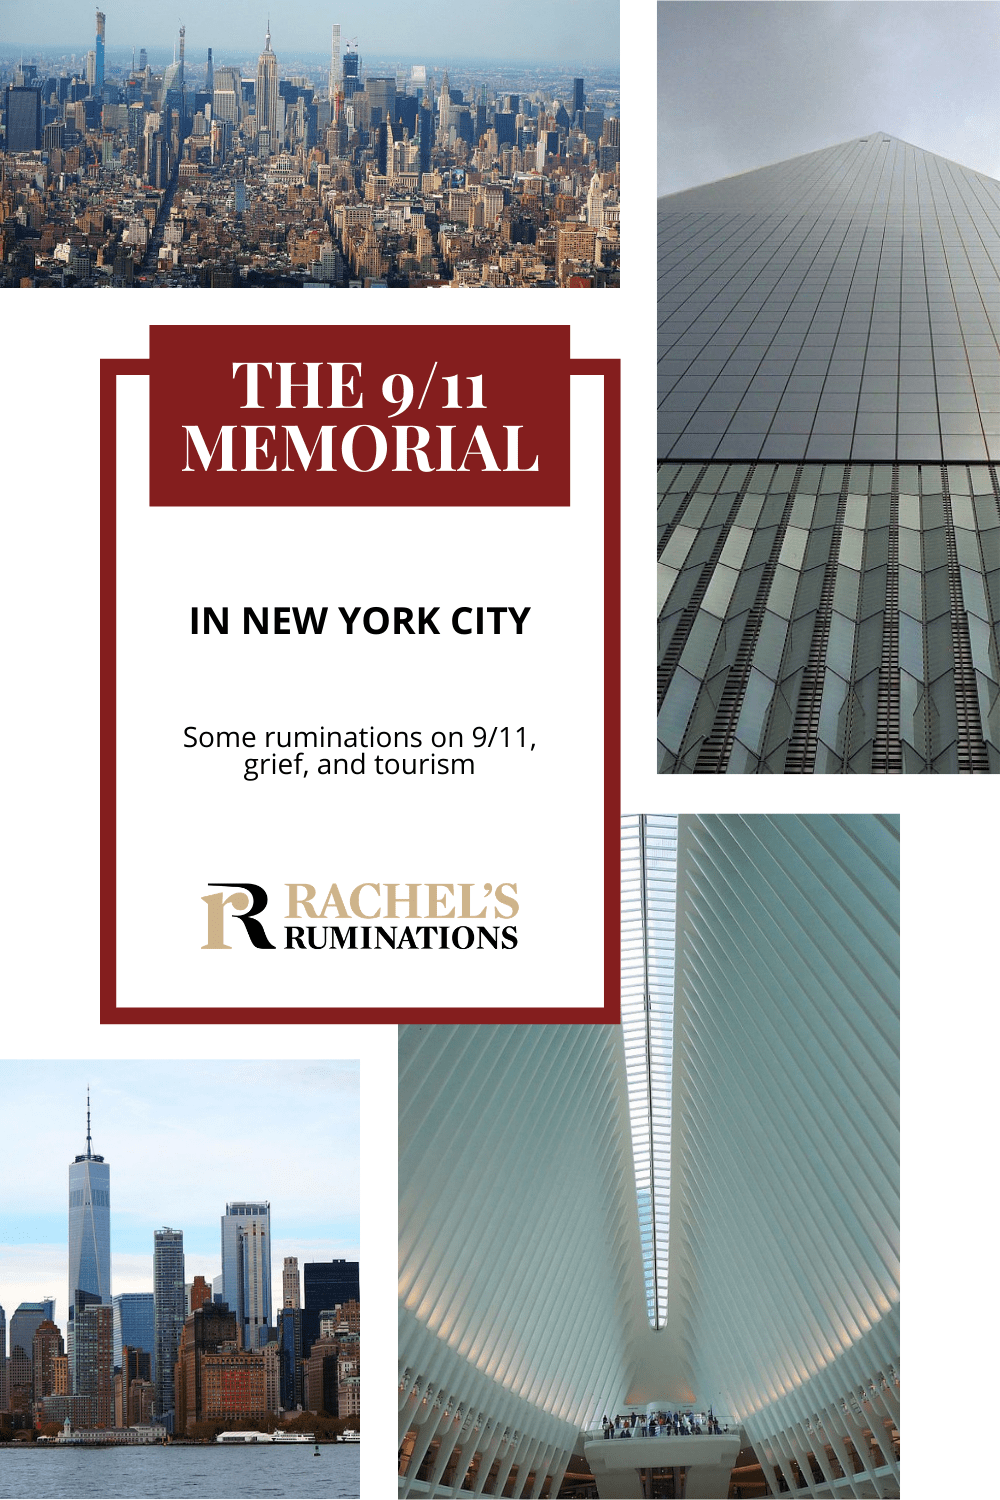 The 9/11 memorial site draws crowds of tourists, but why do we visit it? Read about One World Trade Center and the 9/11 museum and memorial. via @rachelsruminations